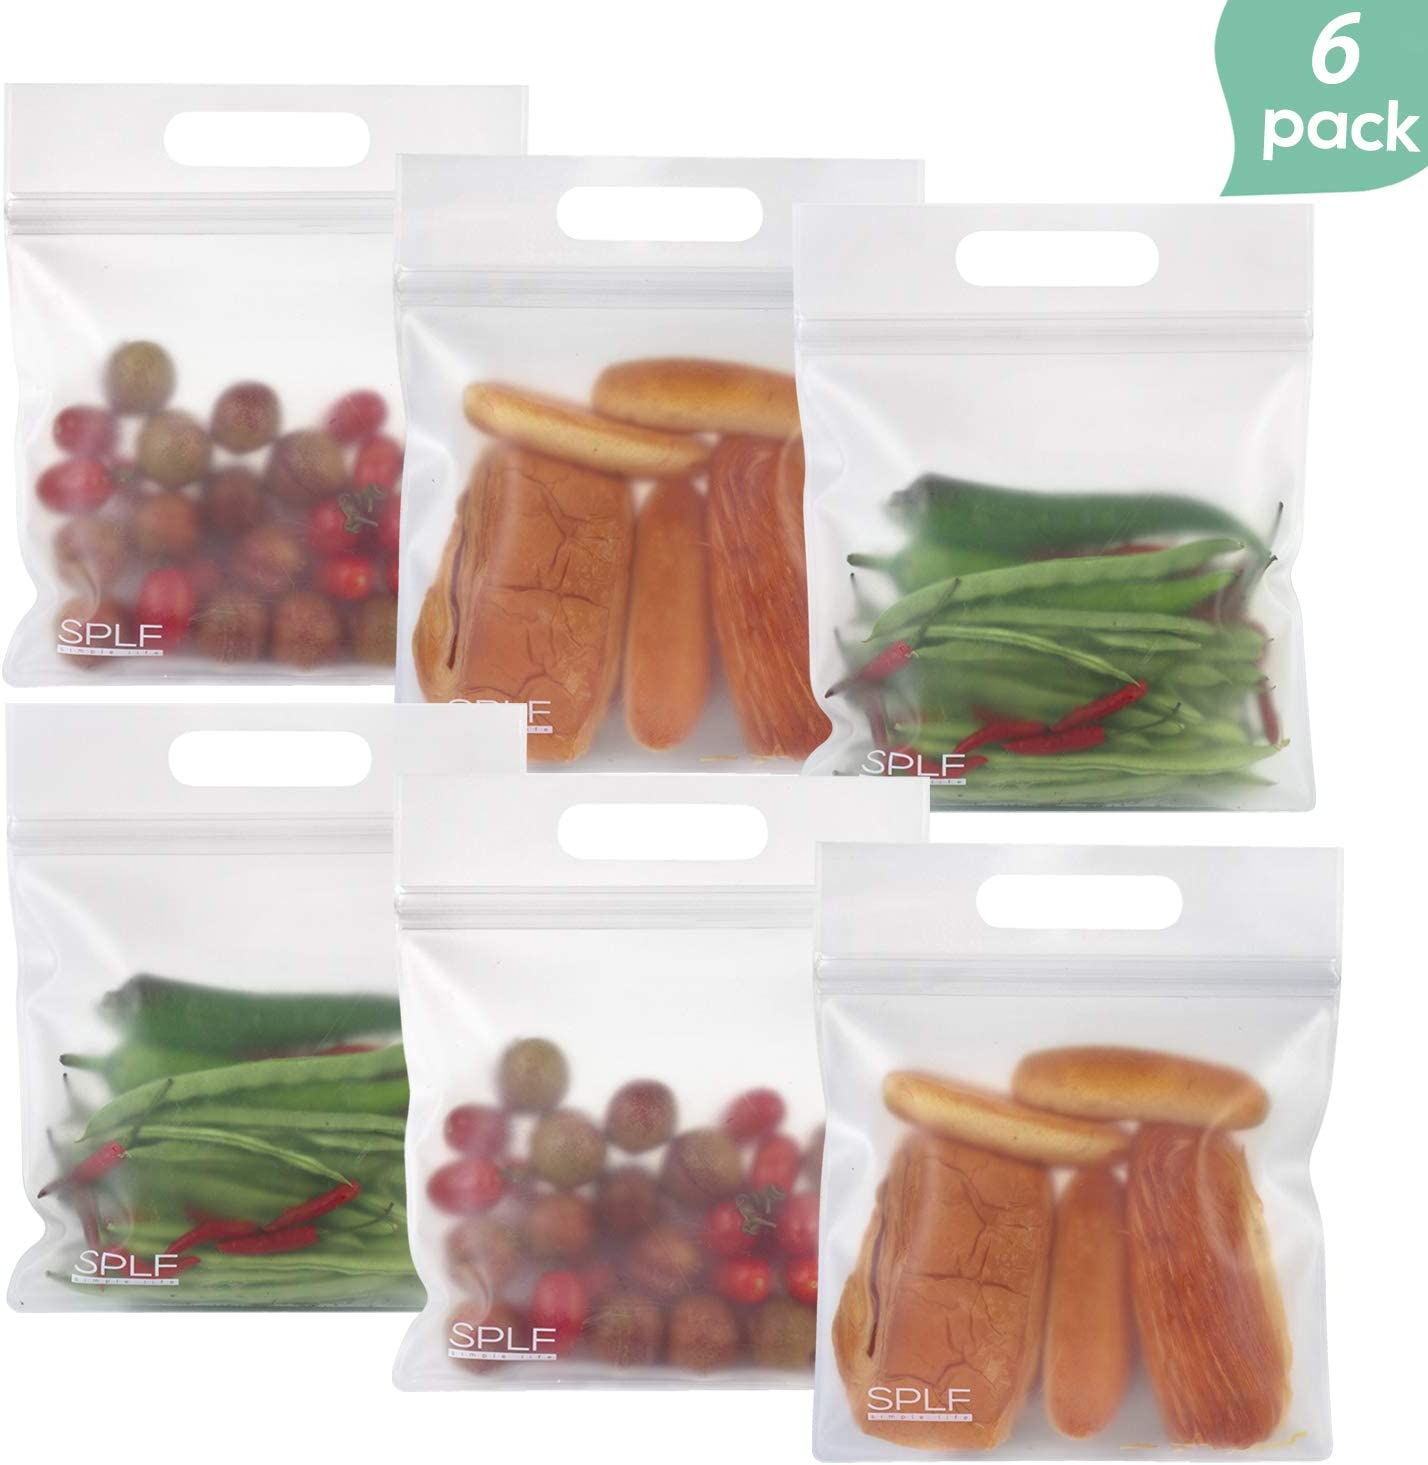 SPLF 6 Pack Lunch Bag with Handler, Extra Thick BPA Free PEVA Ziplock Bags, Ideal For Sandwich, Snacks, Food Storage, Make-up Travel Home Organization.